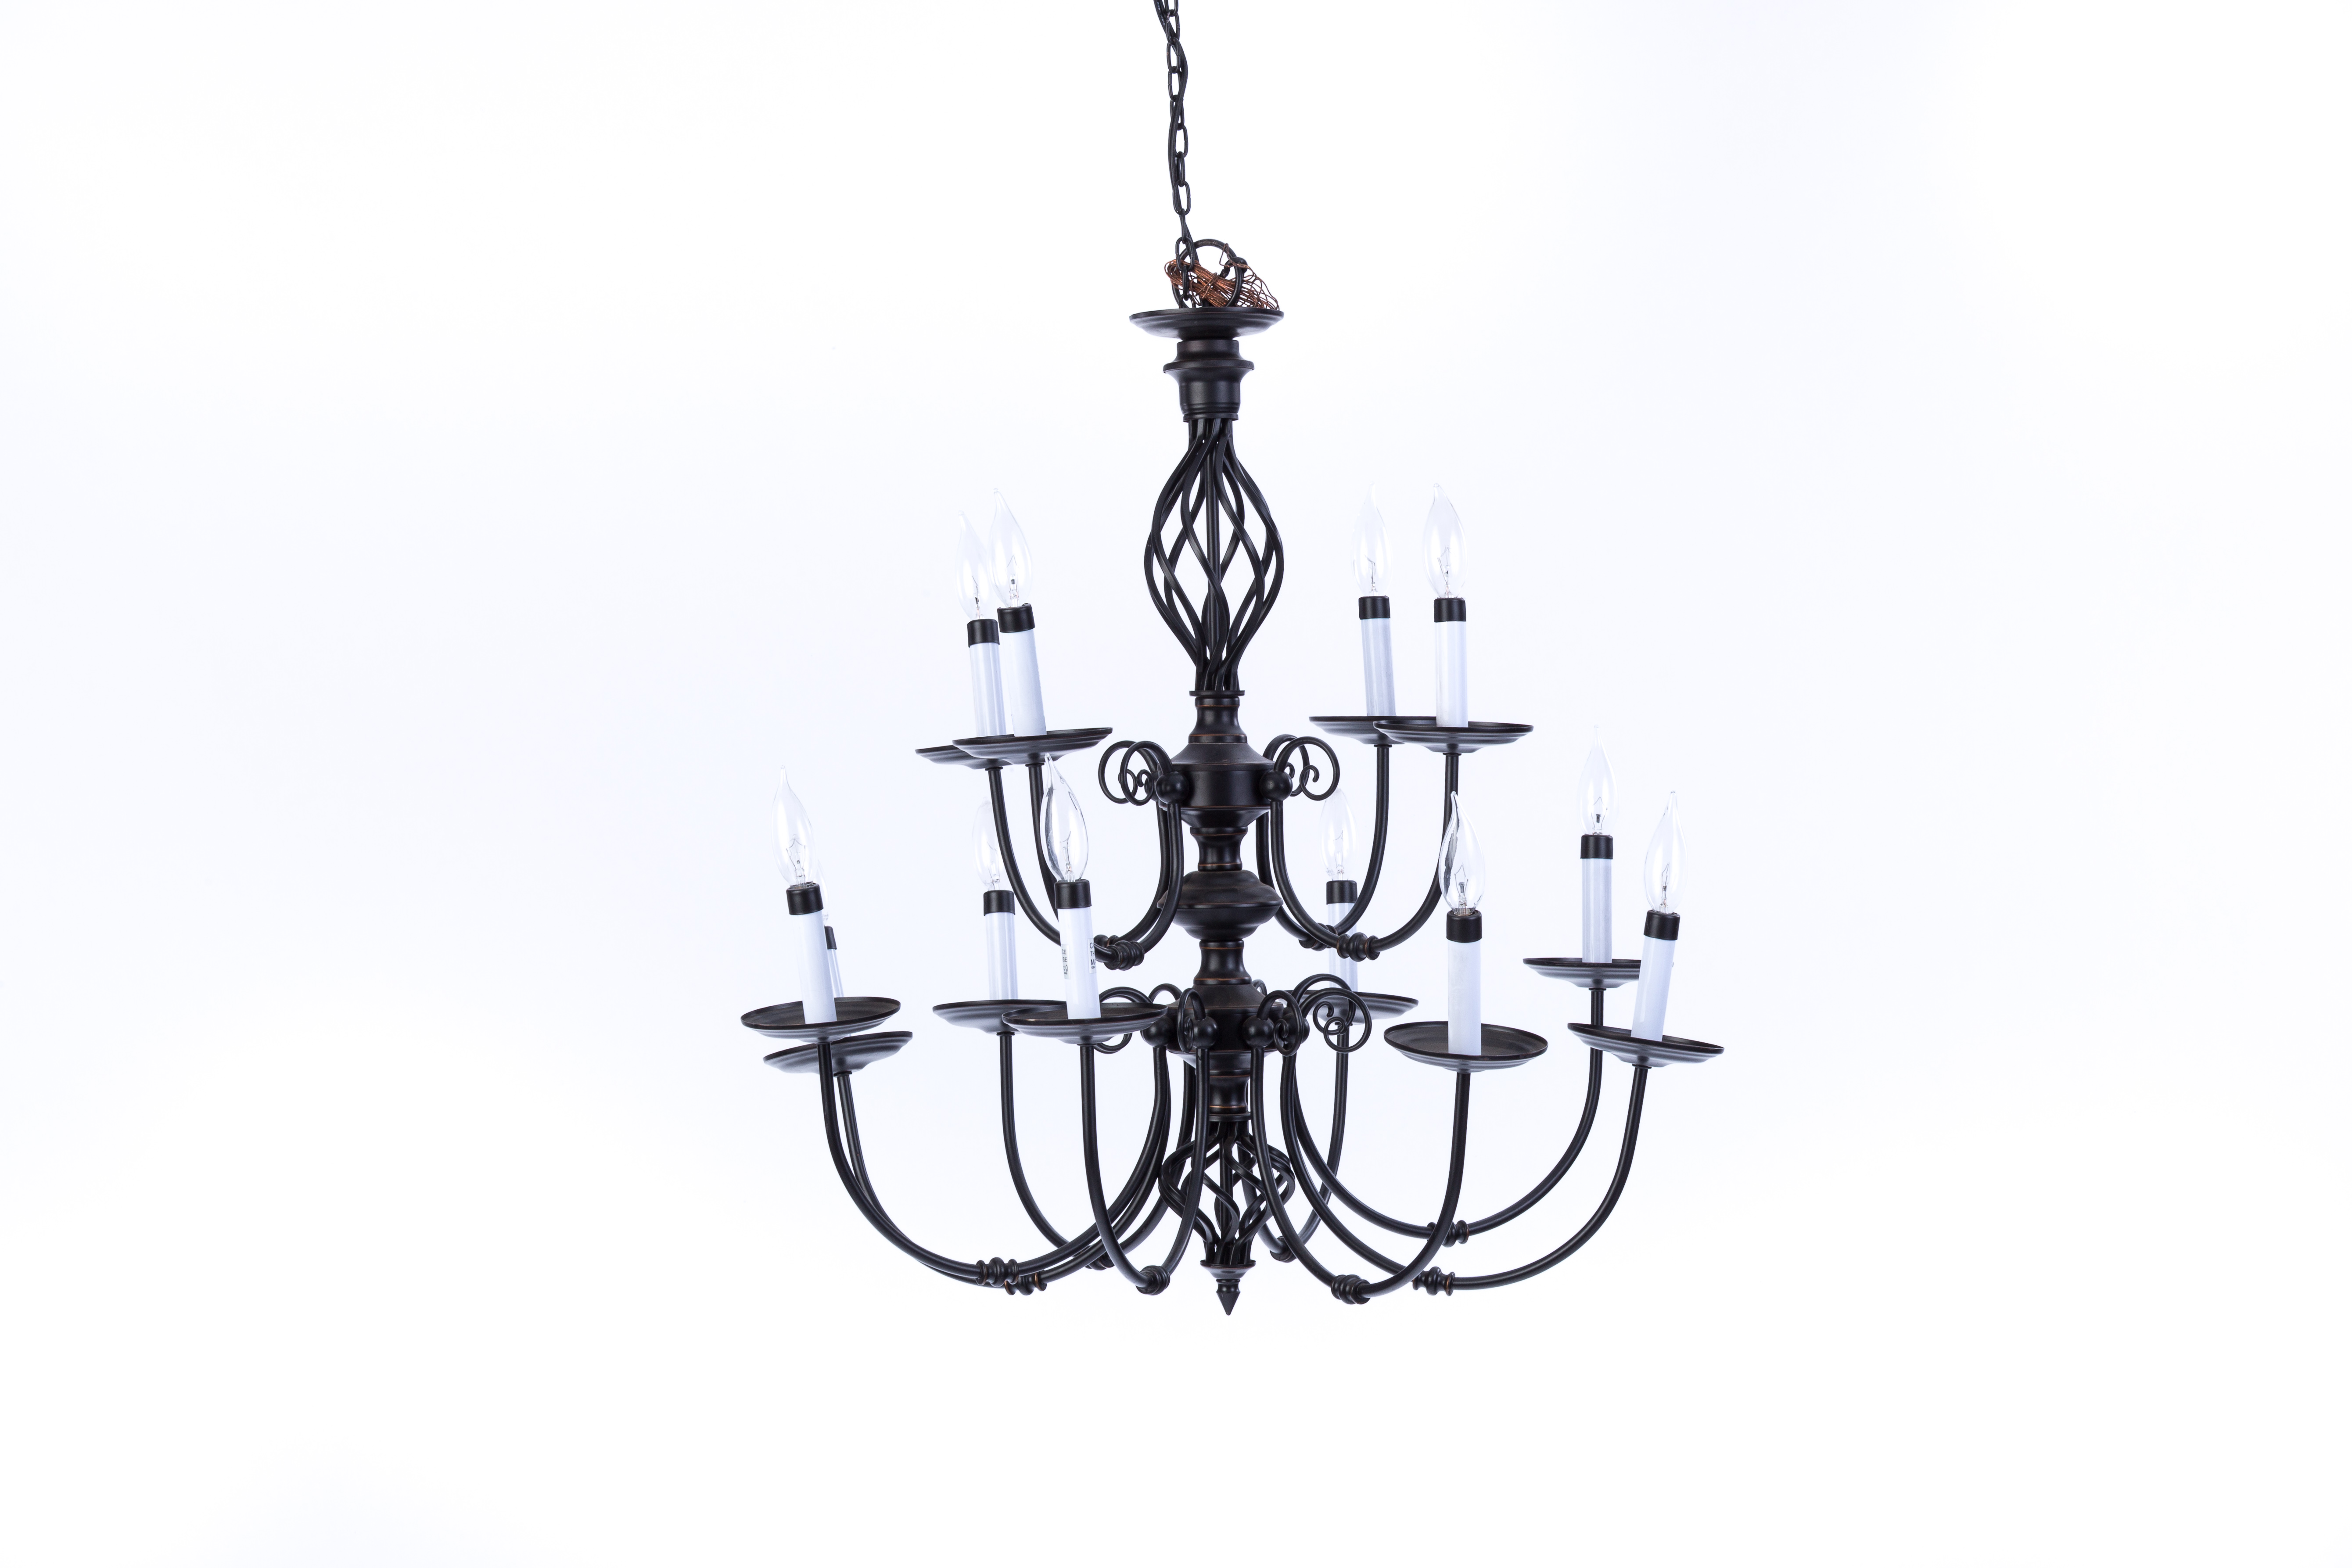 Rustic wrought iron chandelier rental encore events rentals rustic wrought iron chandelier aloadofball Image collections